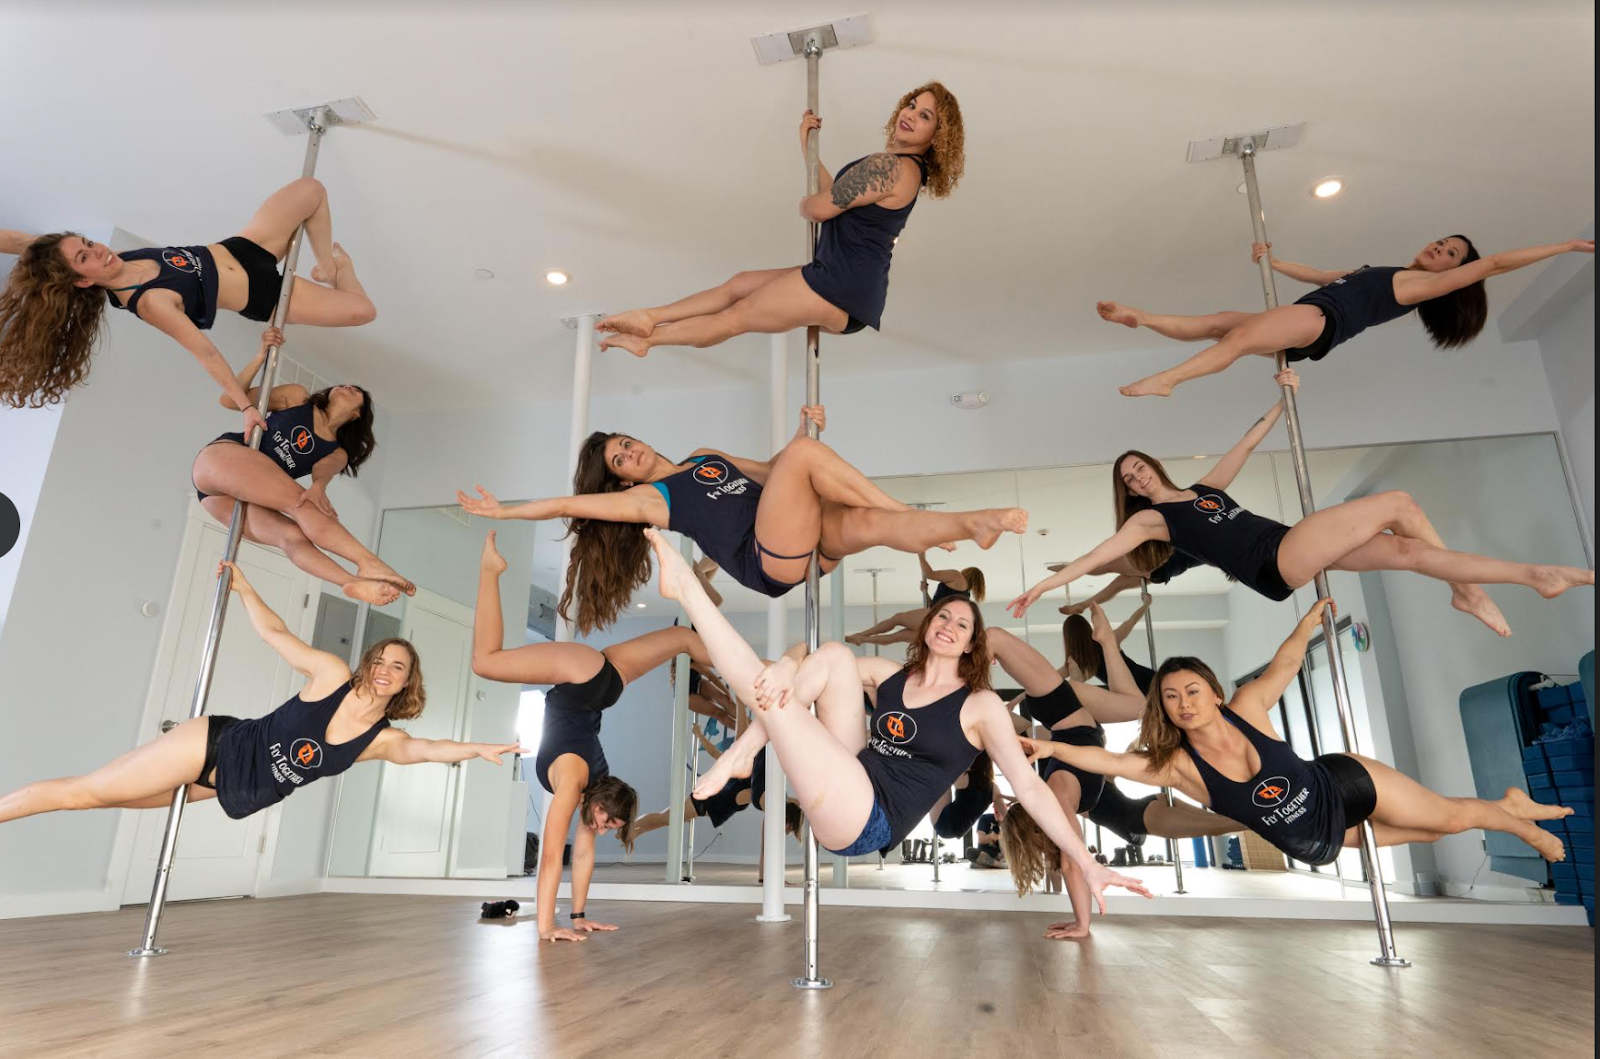 The 11 co-owners of Fly Together Fitness are biologists, musicians, educators, and real estate brokers; their ages range from 25 to 53 years old.